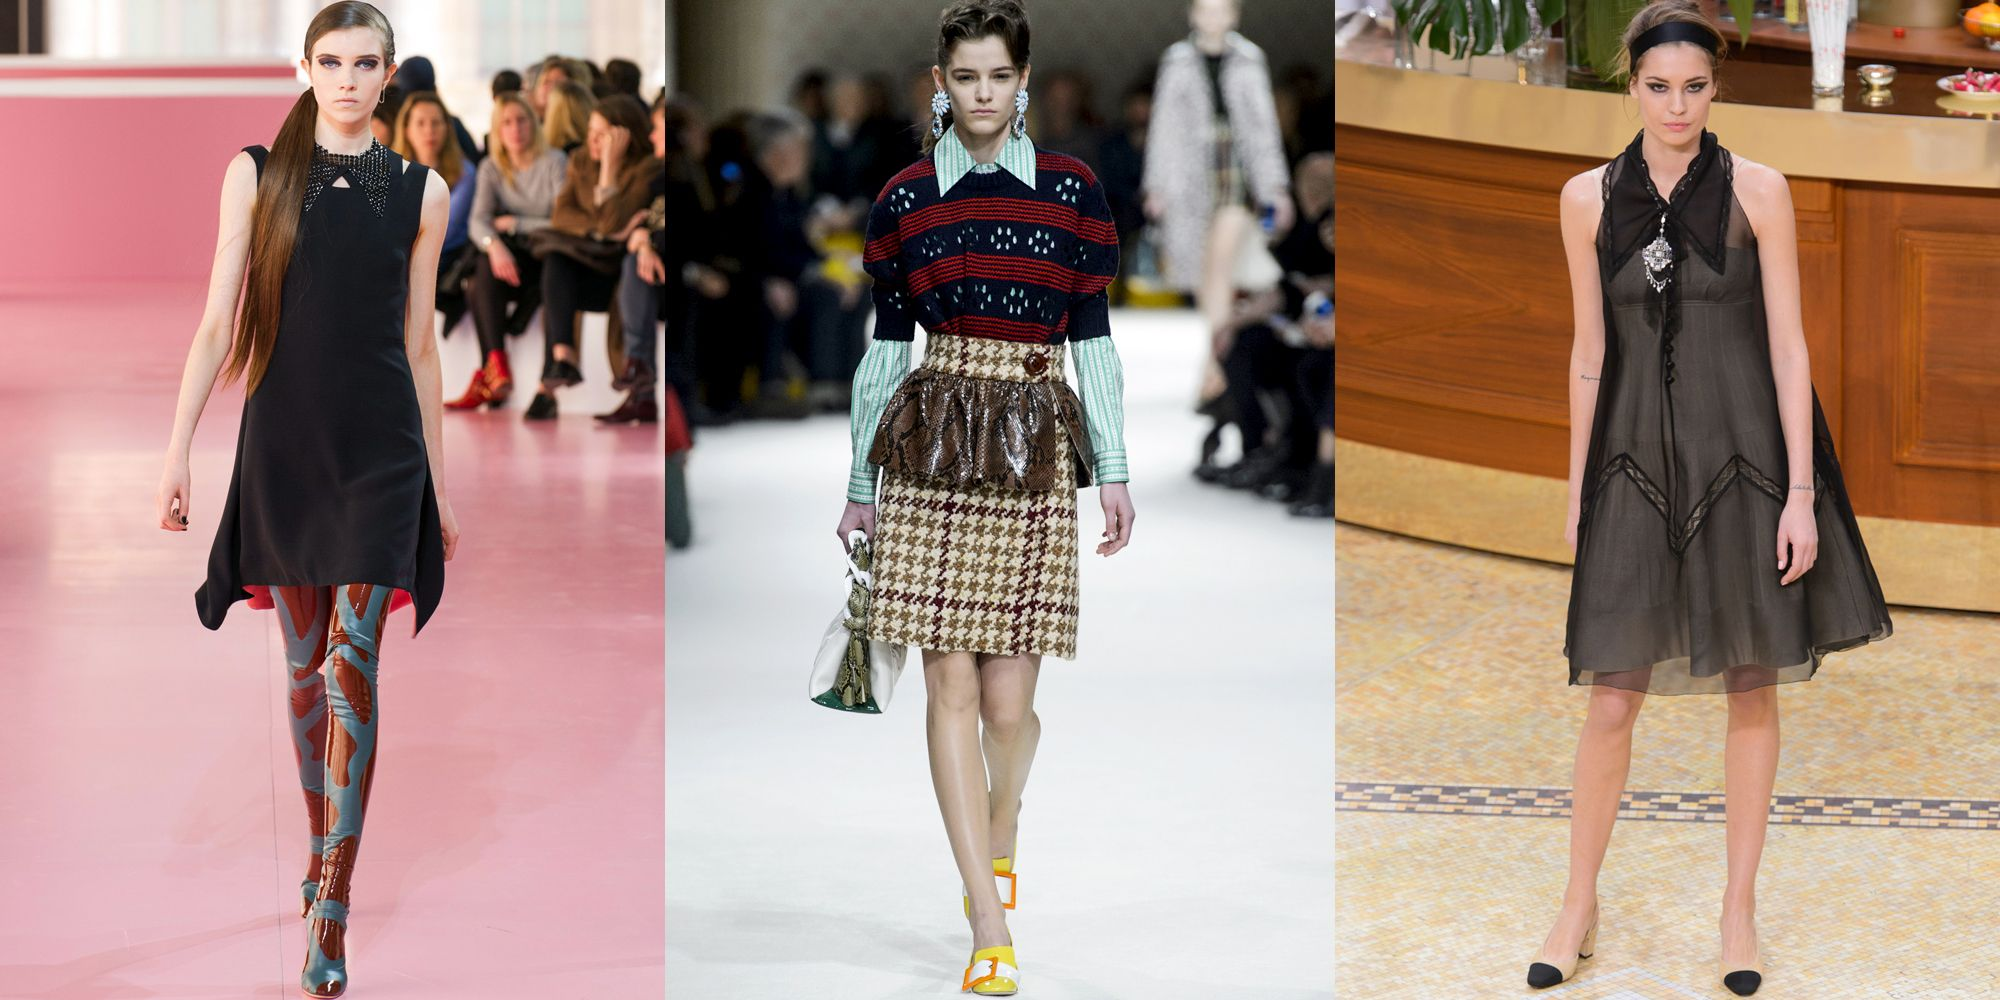 Fashion trends for fall - Fall 2015 Top Micro Trends Emerging Fashion Trends From The Fall Runways